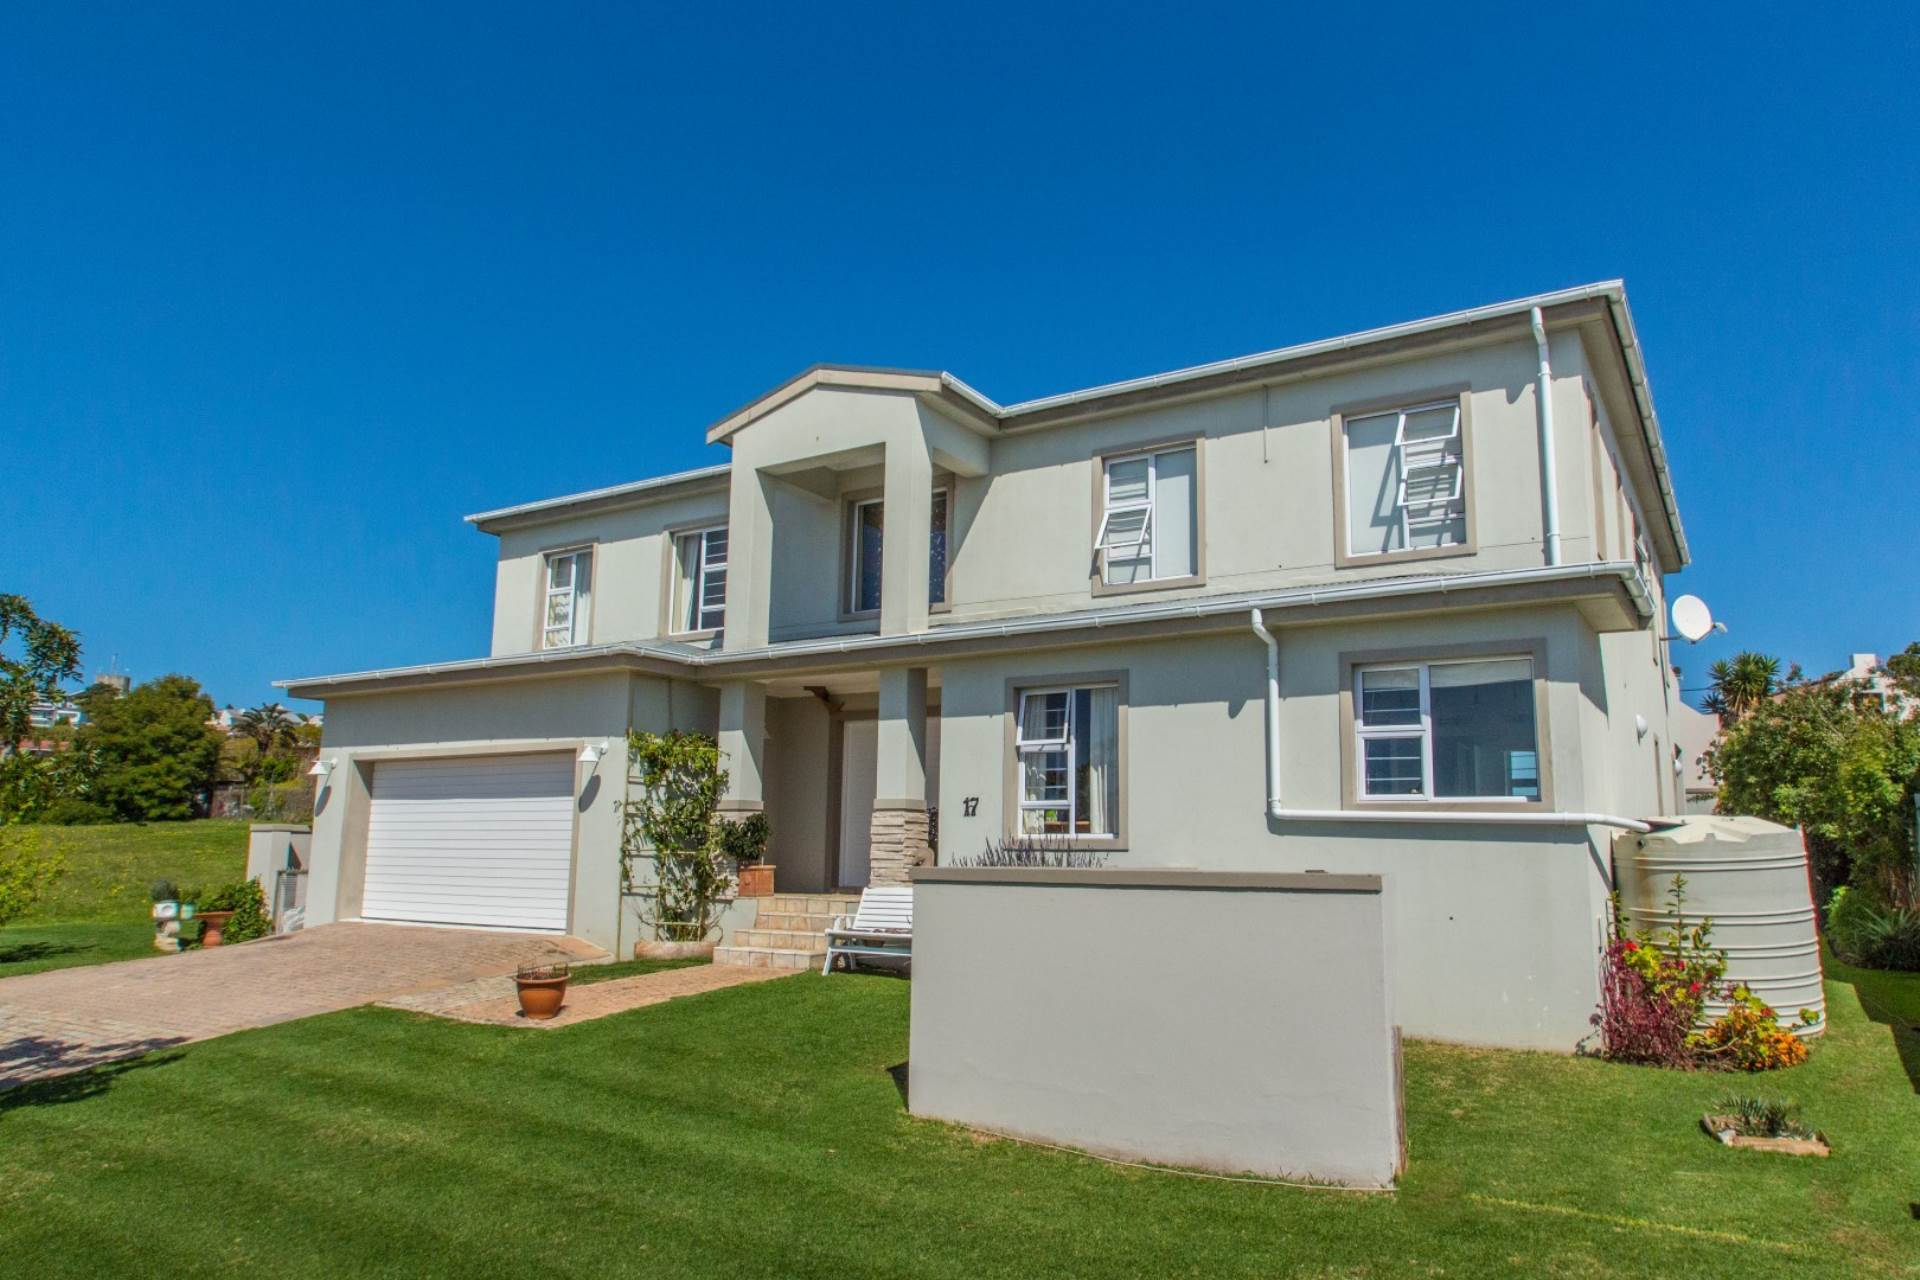 5 BedroomHouse For Sale In Bowtie